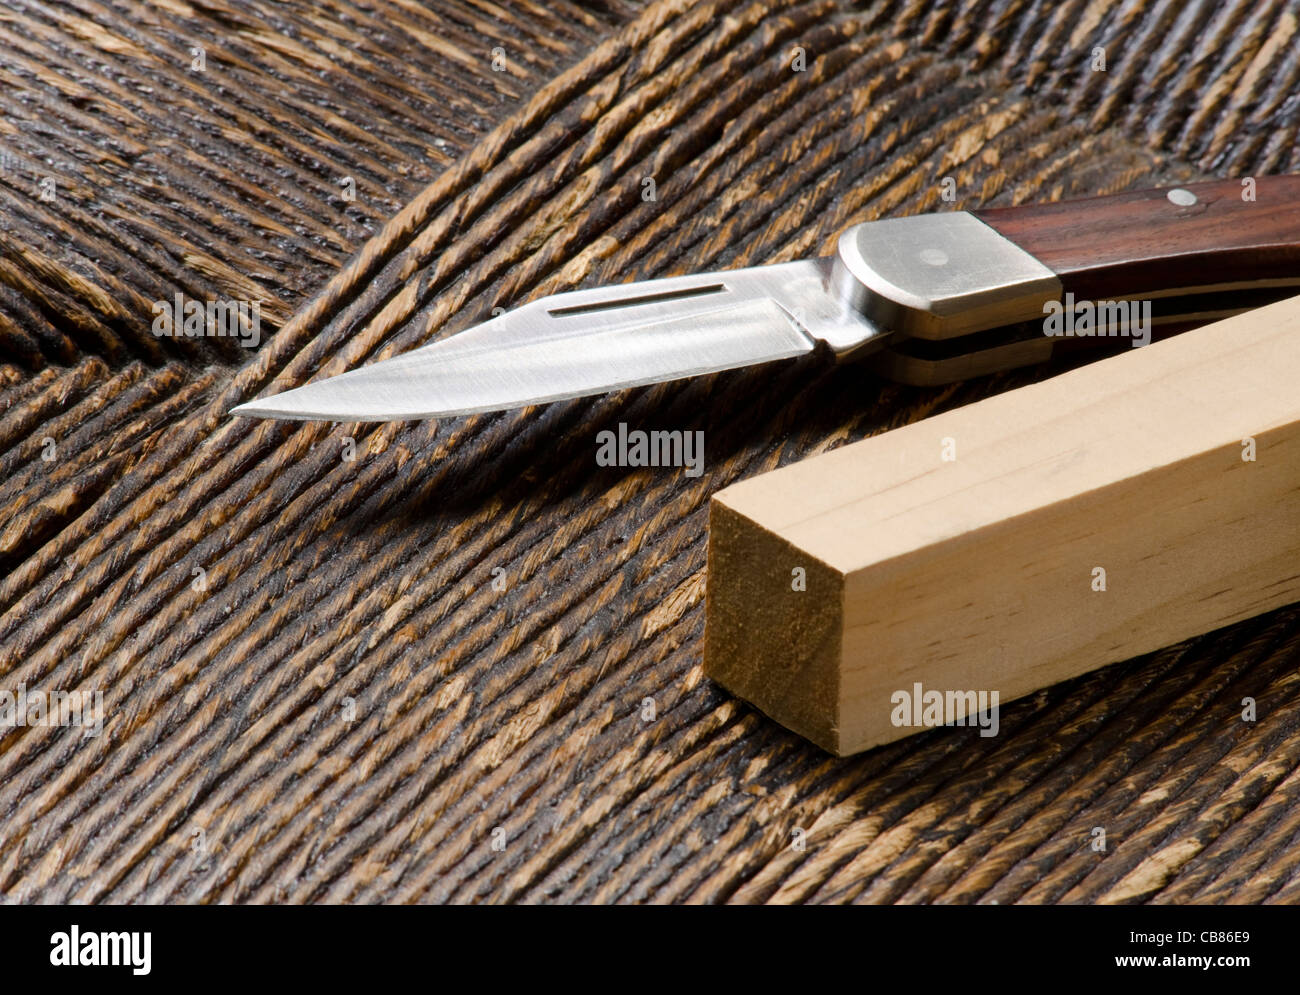 pocket knife with square wooden peg - Stock Image